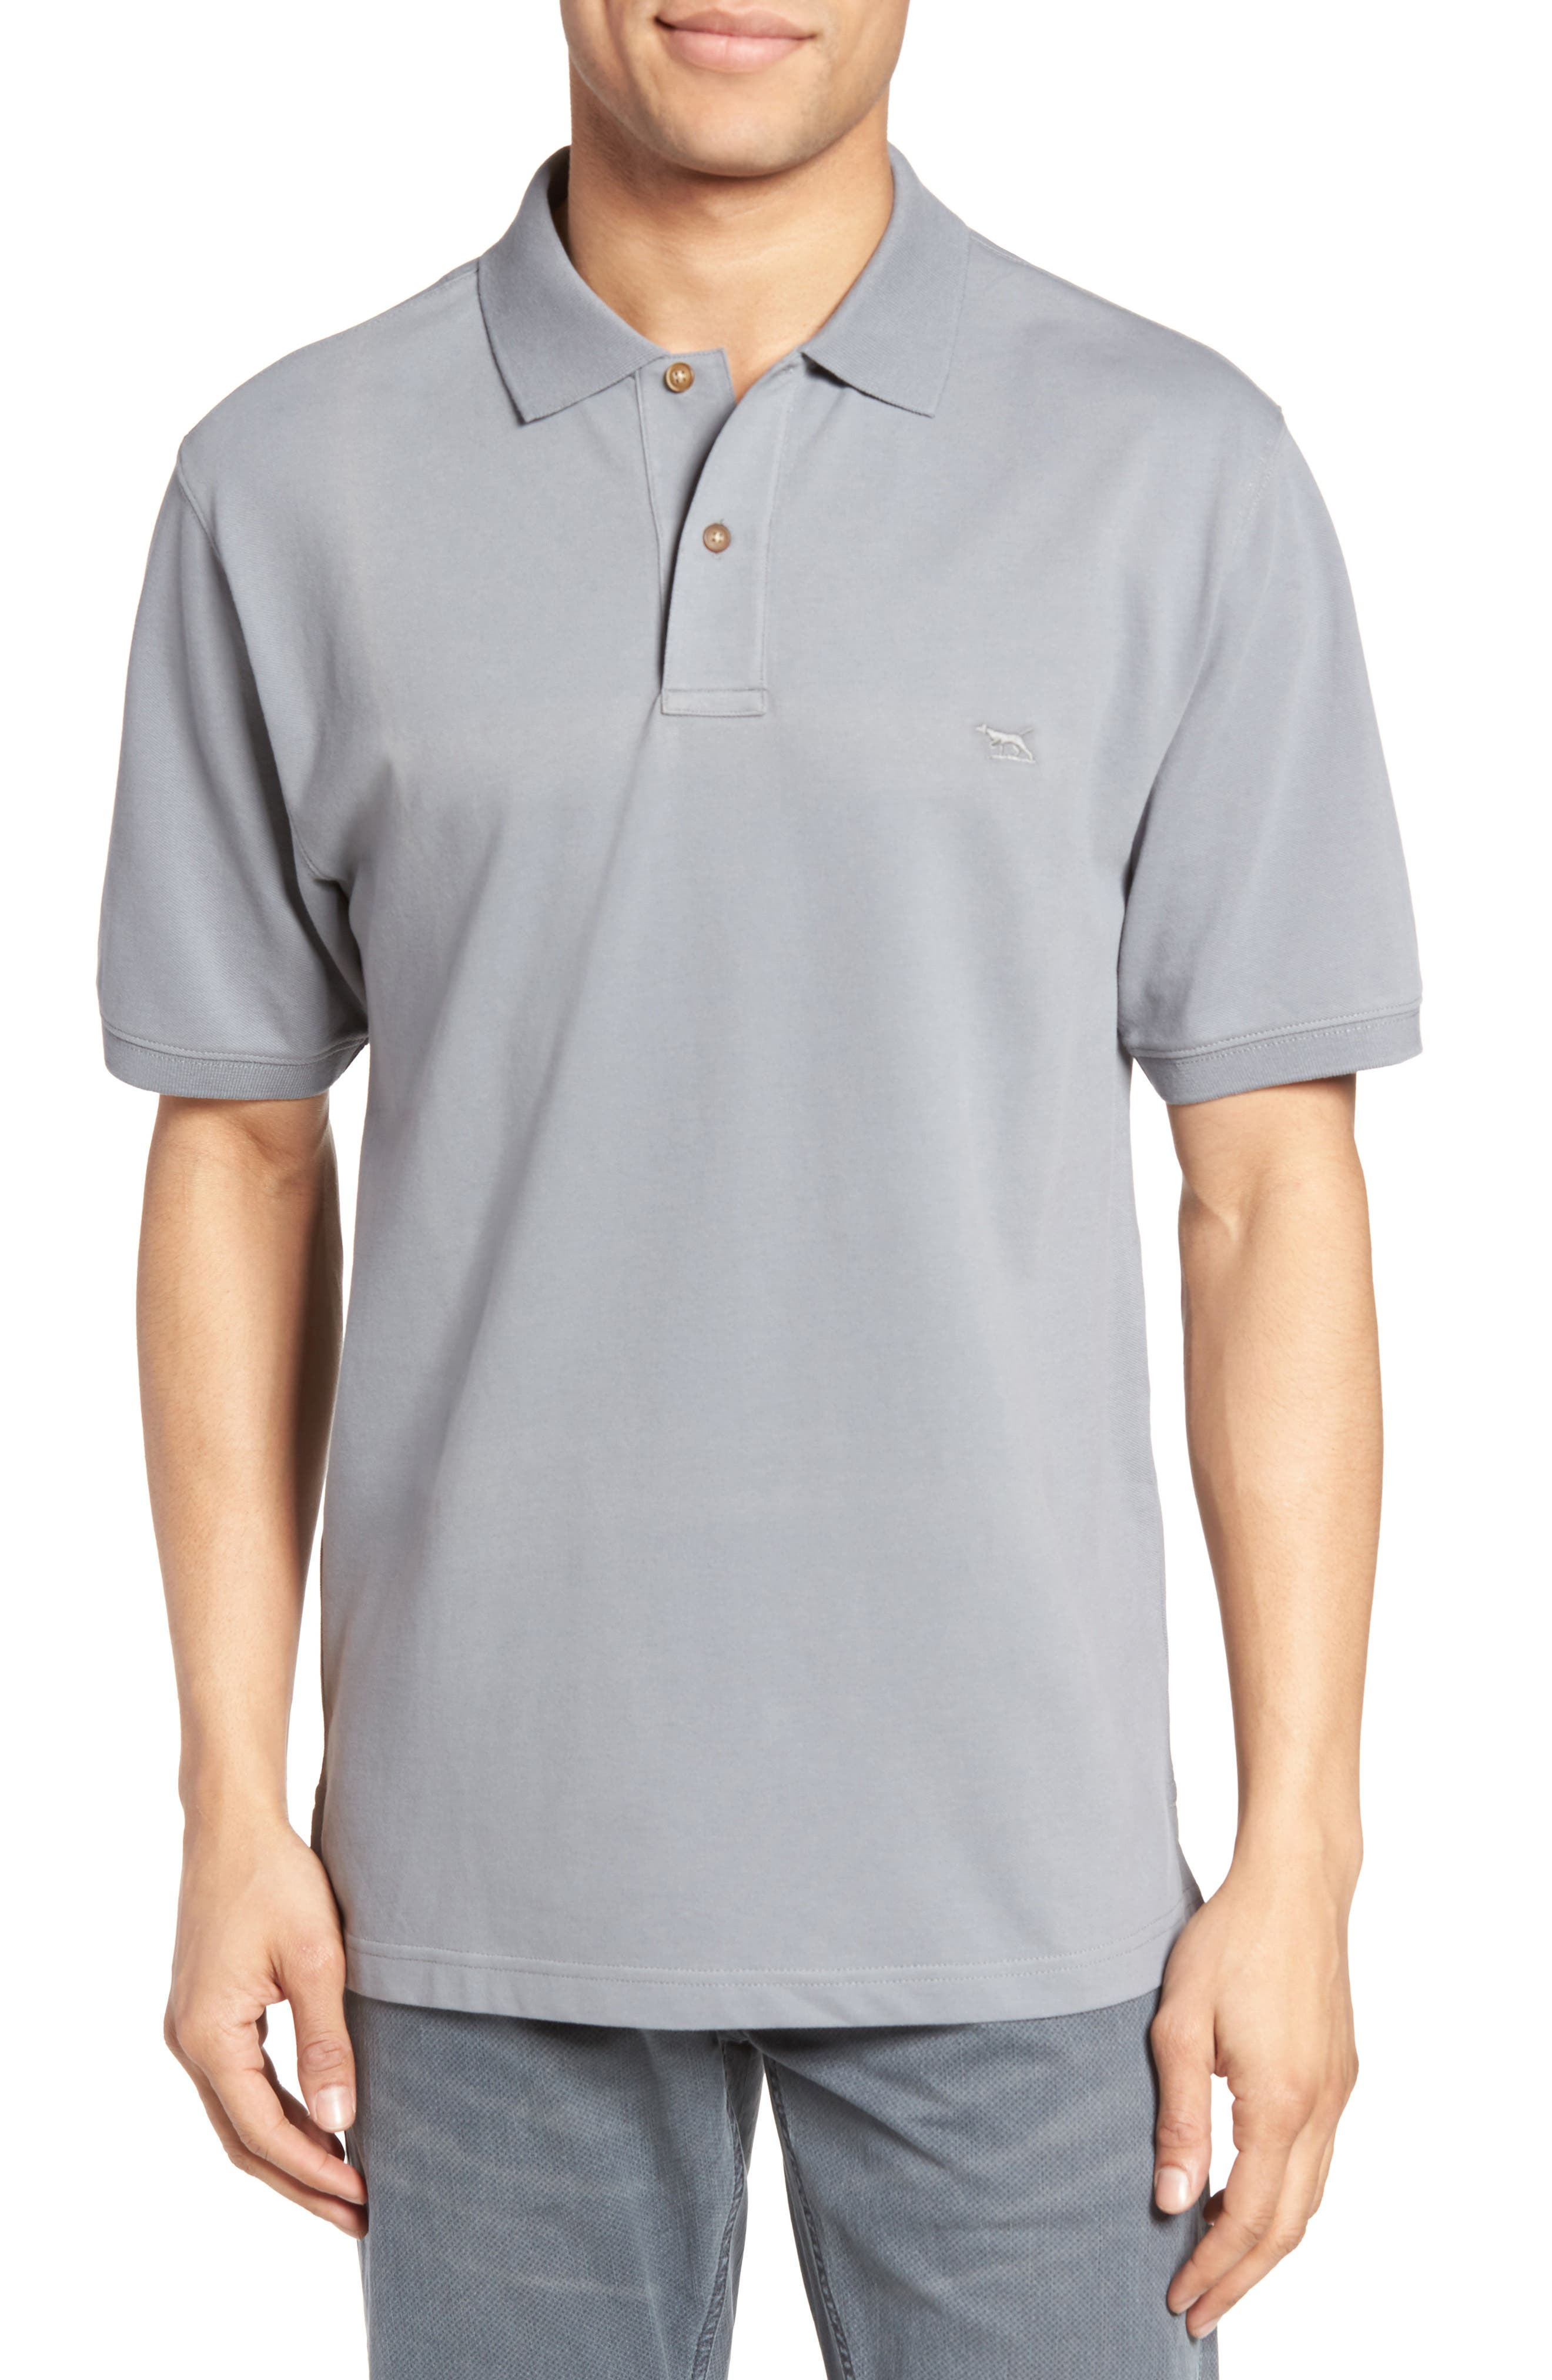 Rodd & Gunn 'Devonport' Original Fit Stretch Cotton Piqué Polo